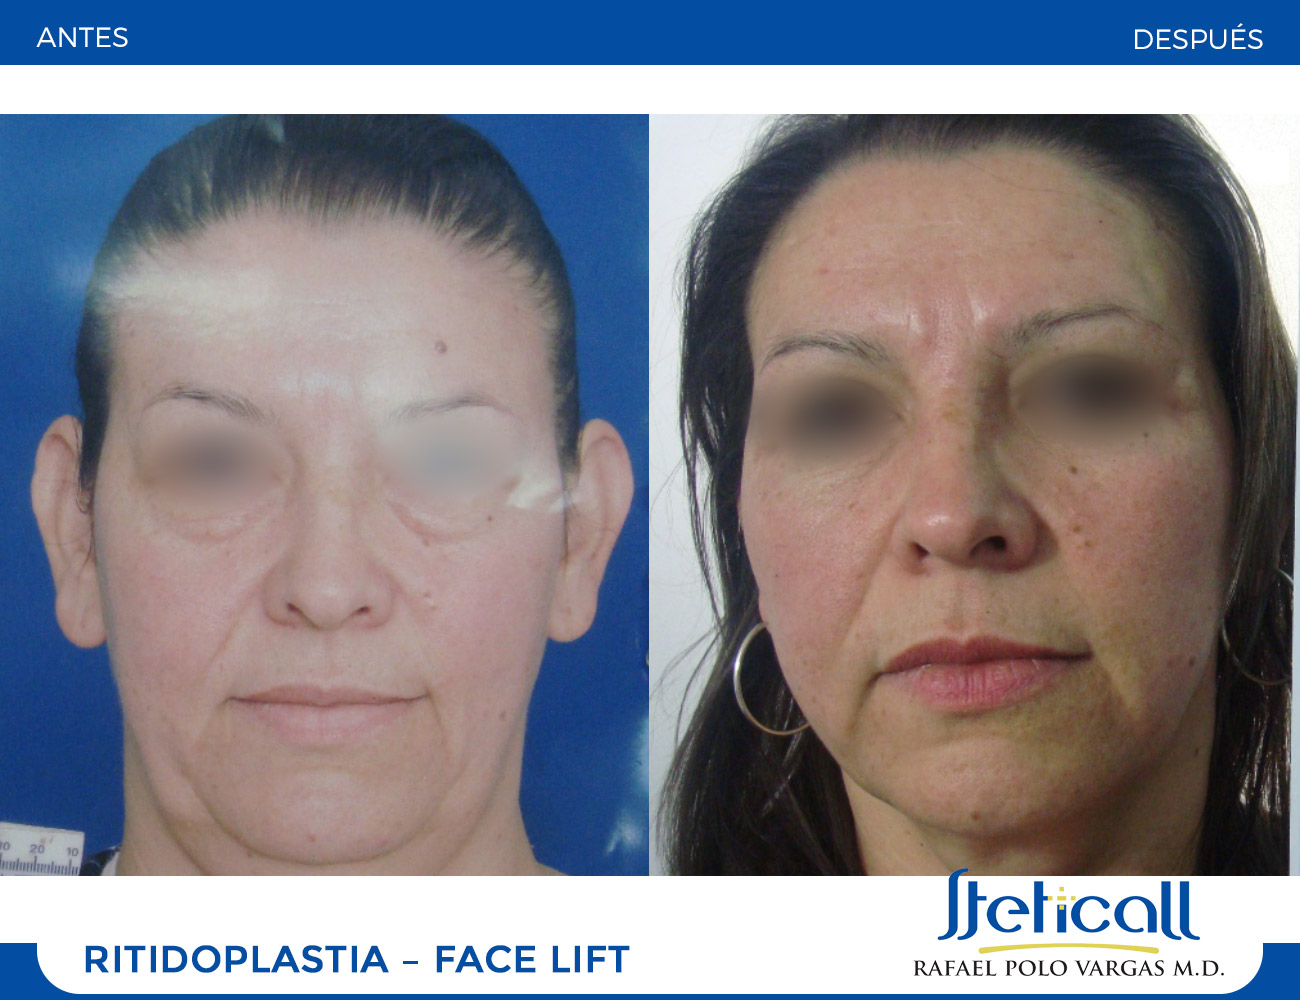 Ritidoplastia (Face-lift)